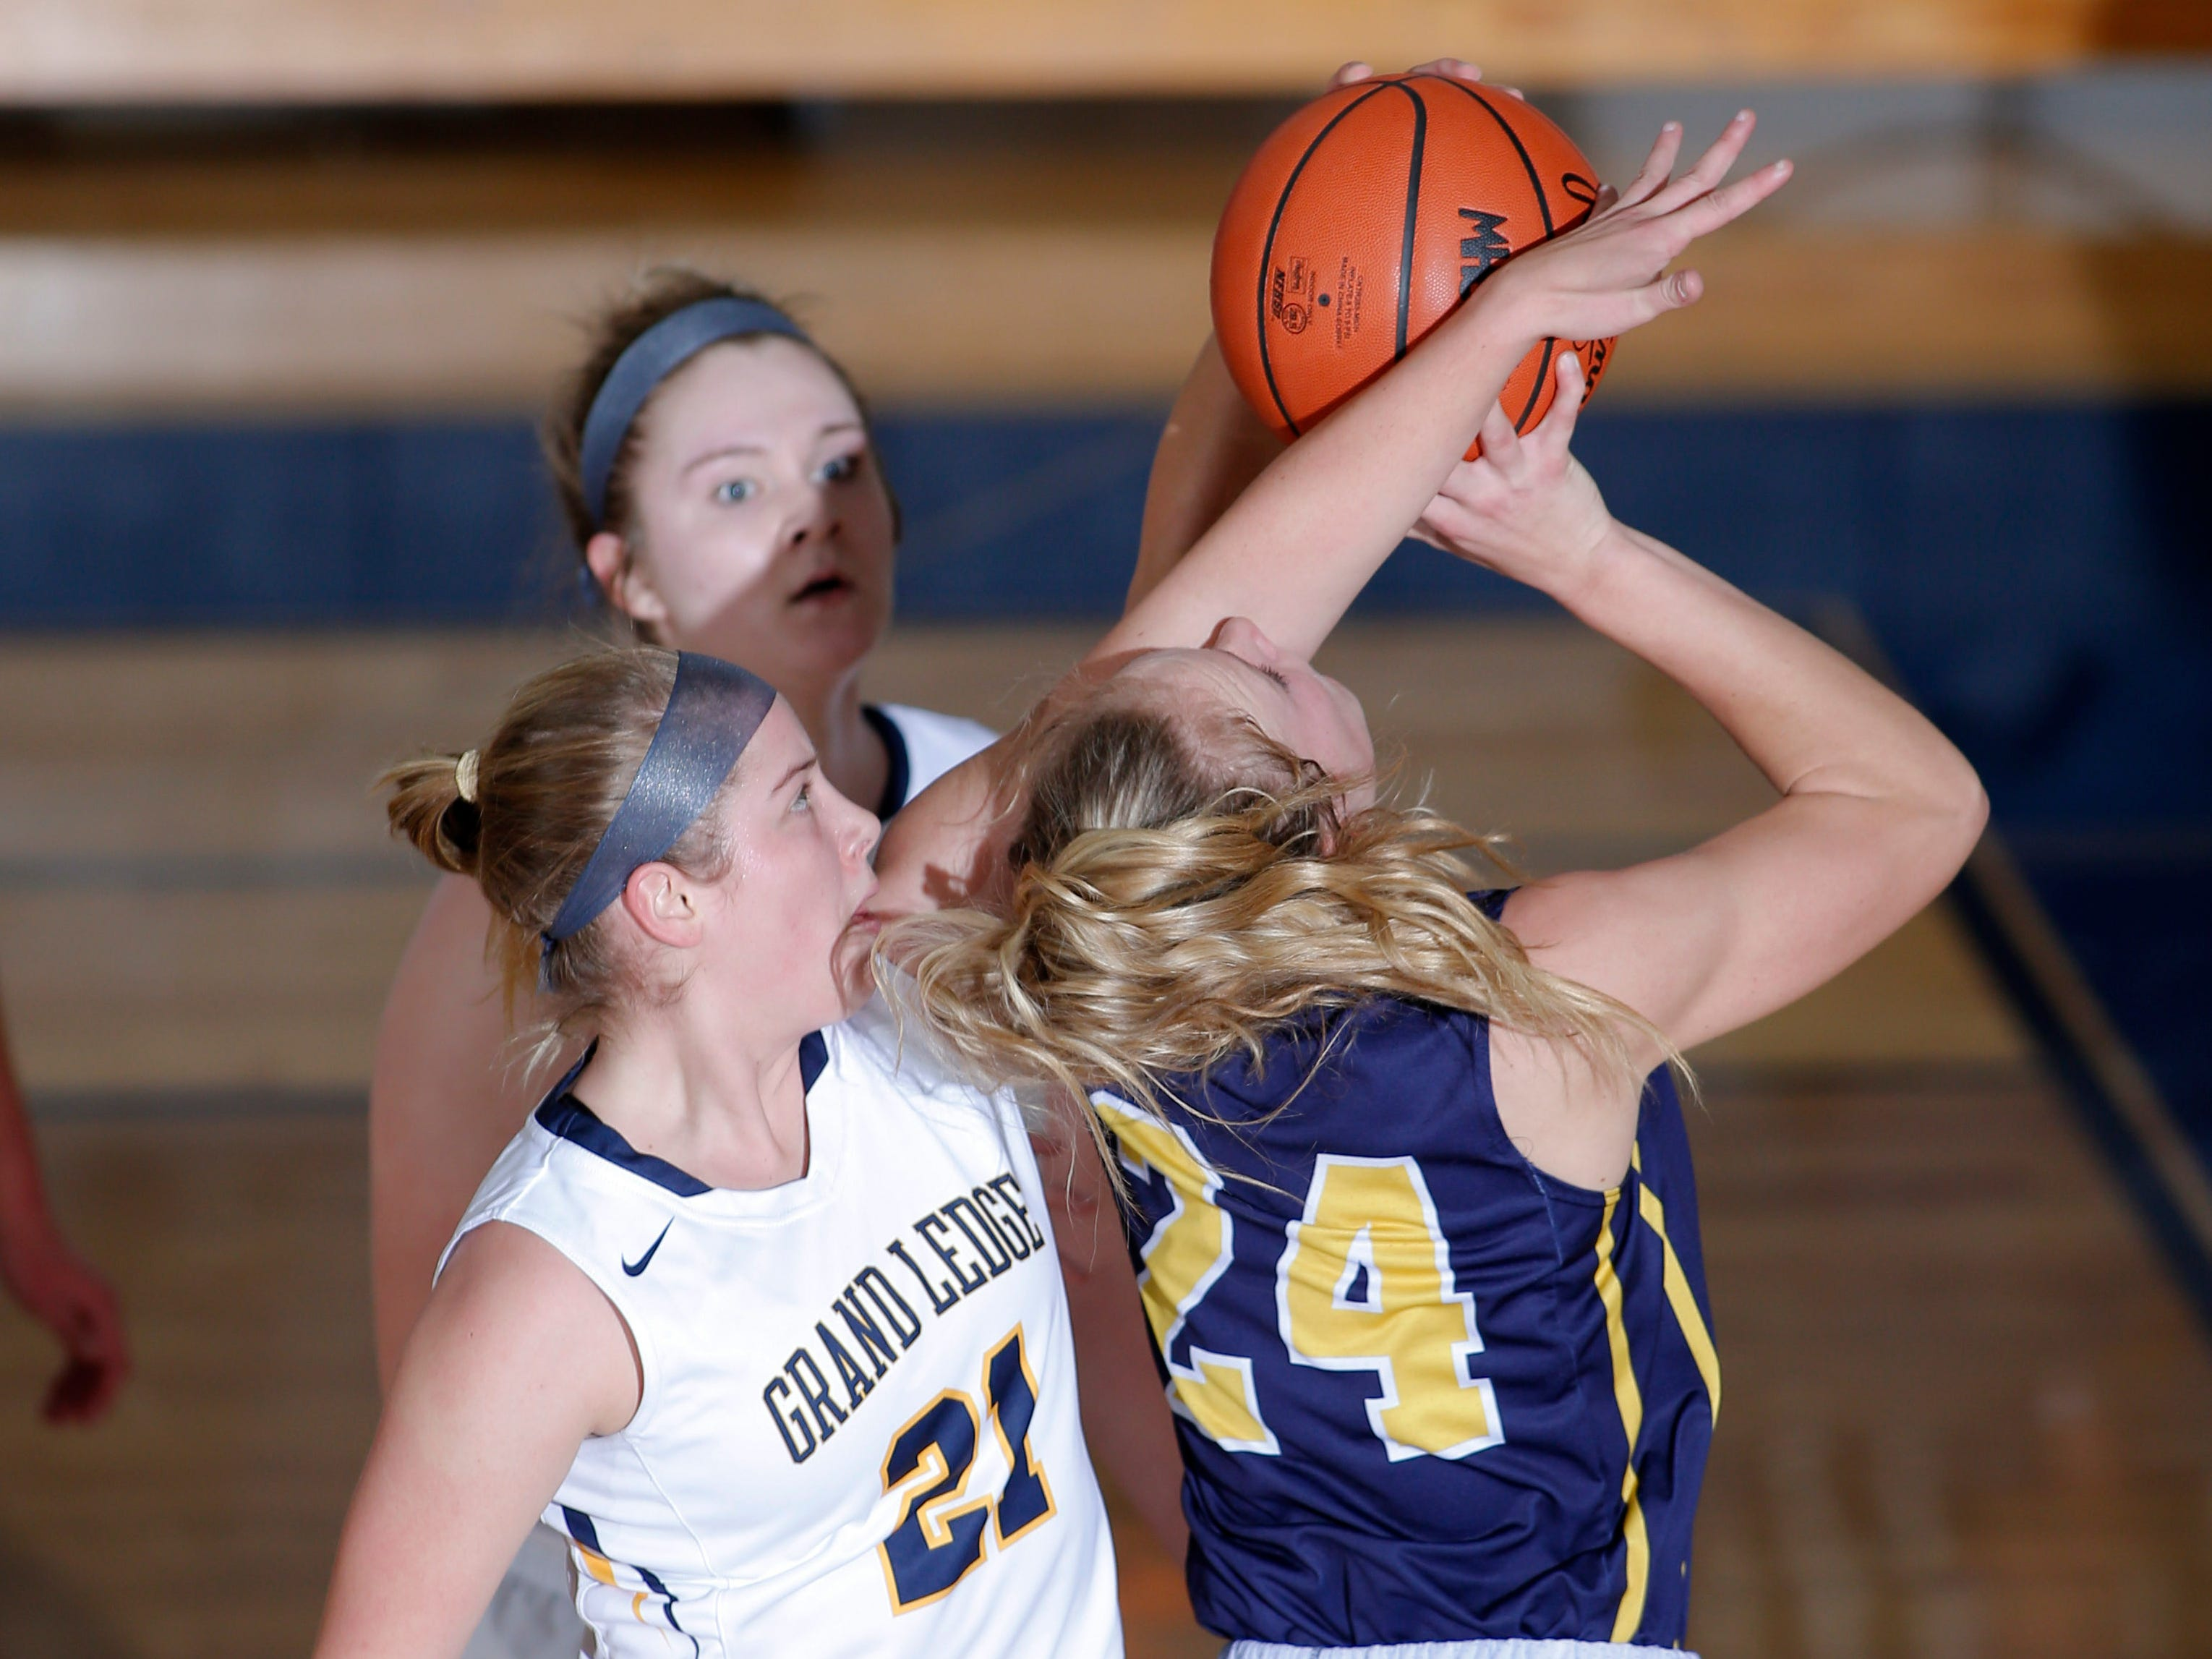 Grand Ledge's Taylor Piper (21) and Courtney Sharland, rear, defend DeWitt's Annie McIntosh (24), Tuesday, Jan. 15, 2019, in Grand Ledge, Mich.